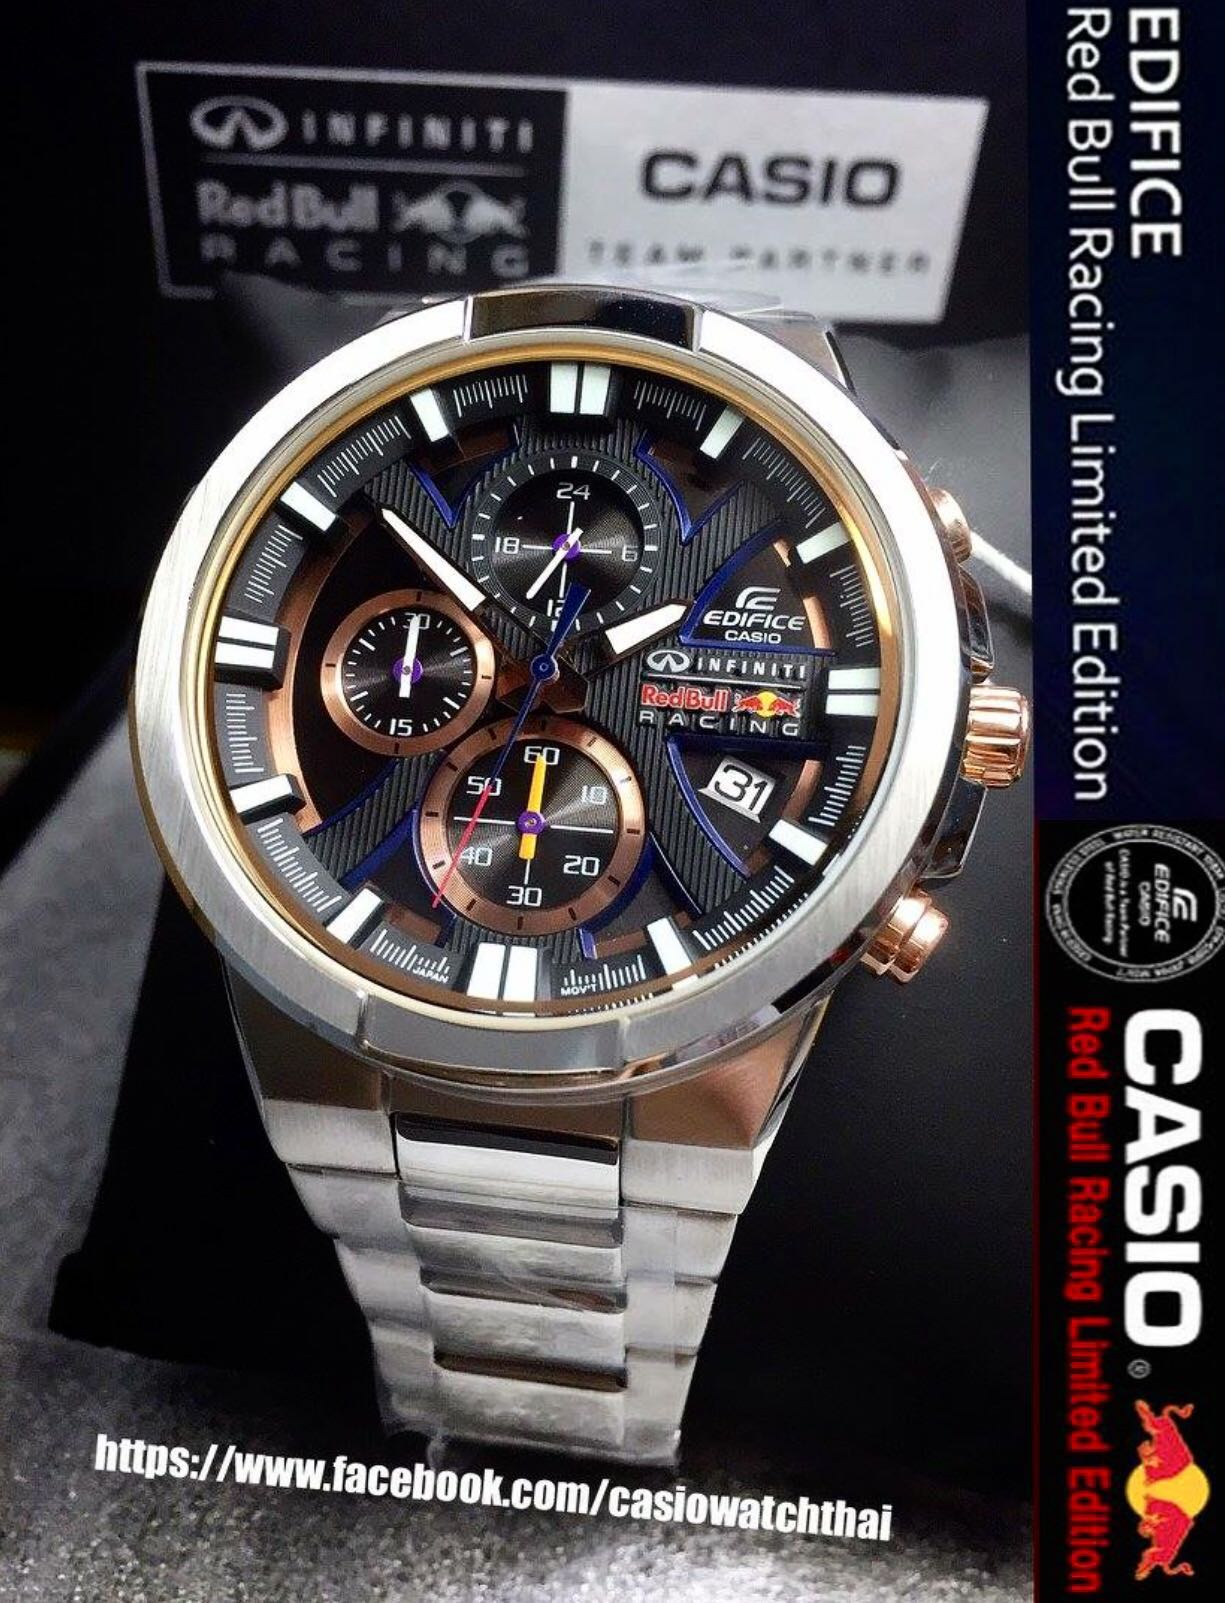 be48f3973373 CASIO EDIFICE INFINITI RED BULL F1 RACER WATCH EFR-544RB-1A LIMITED ...